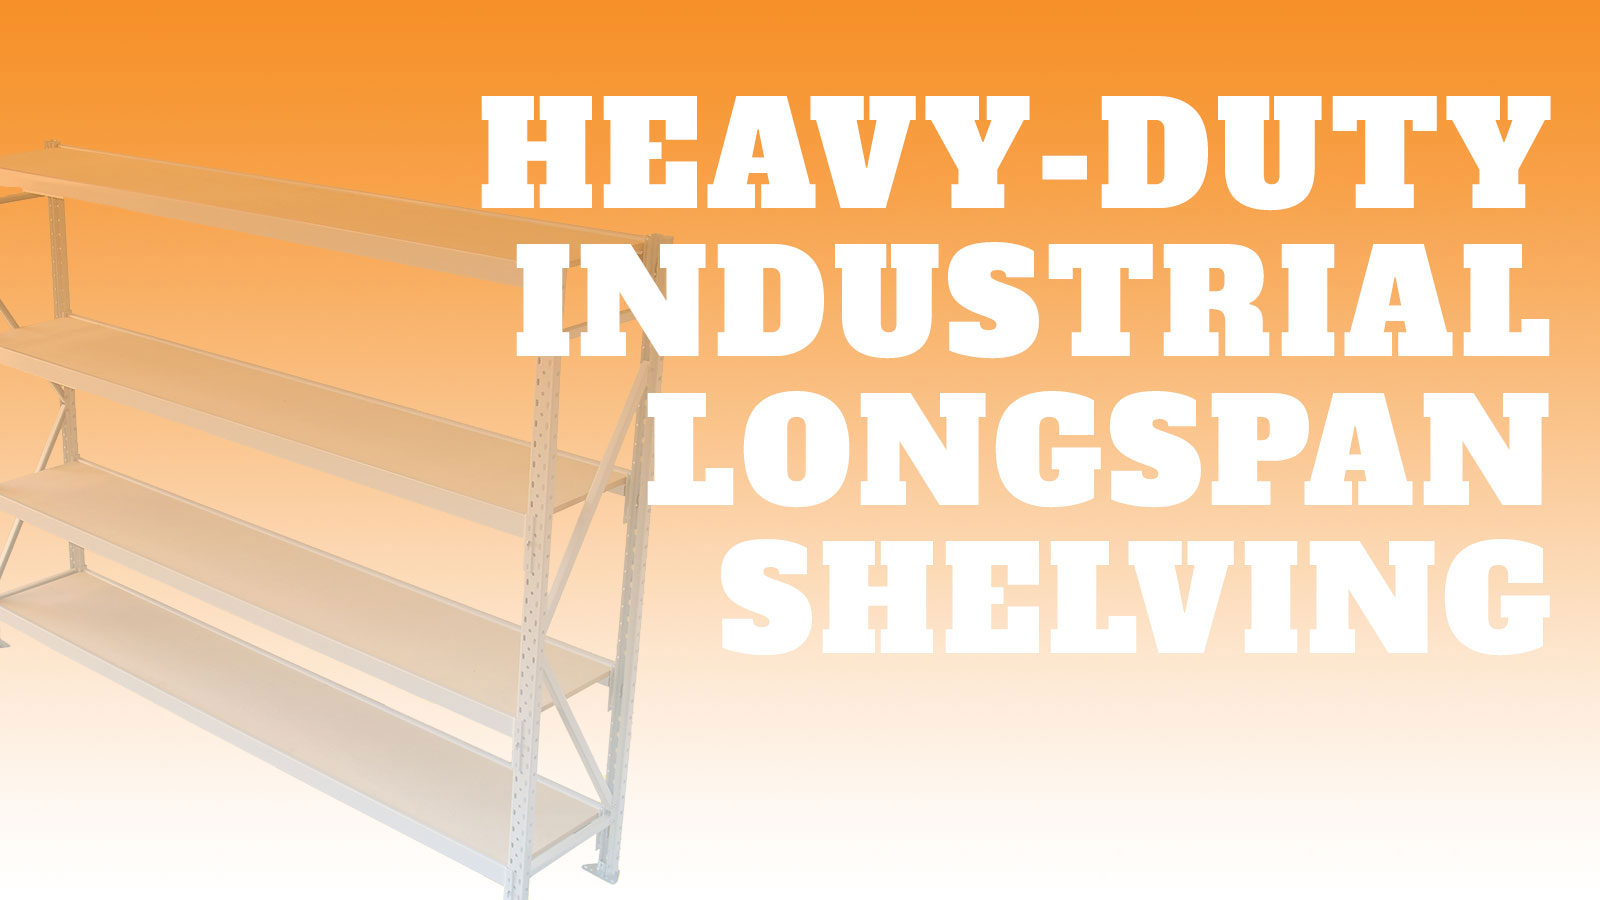 Industrial-Heavy-Duty-Industrial-Longspan